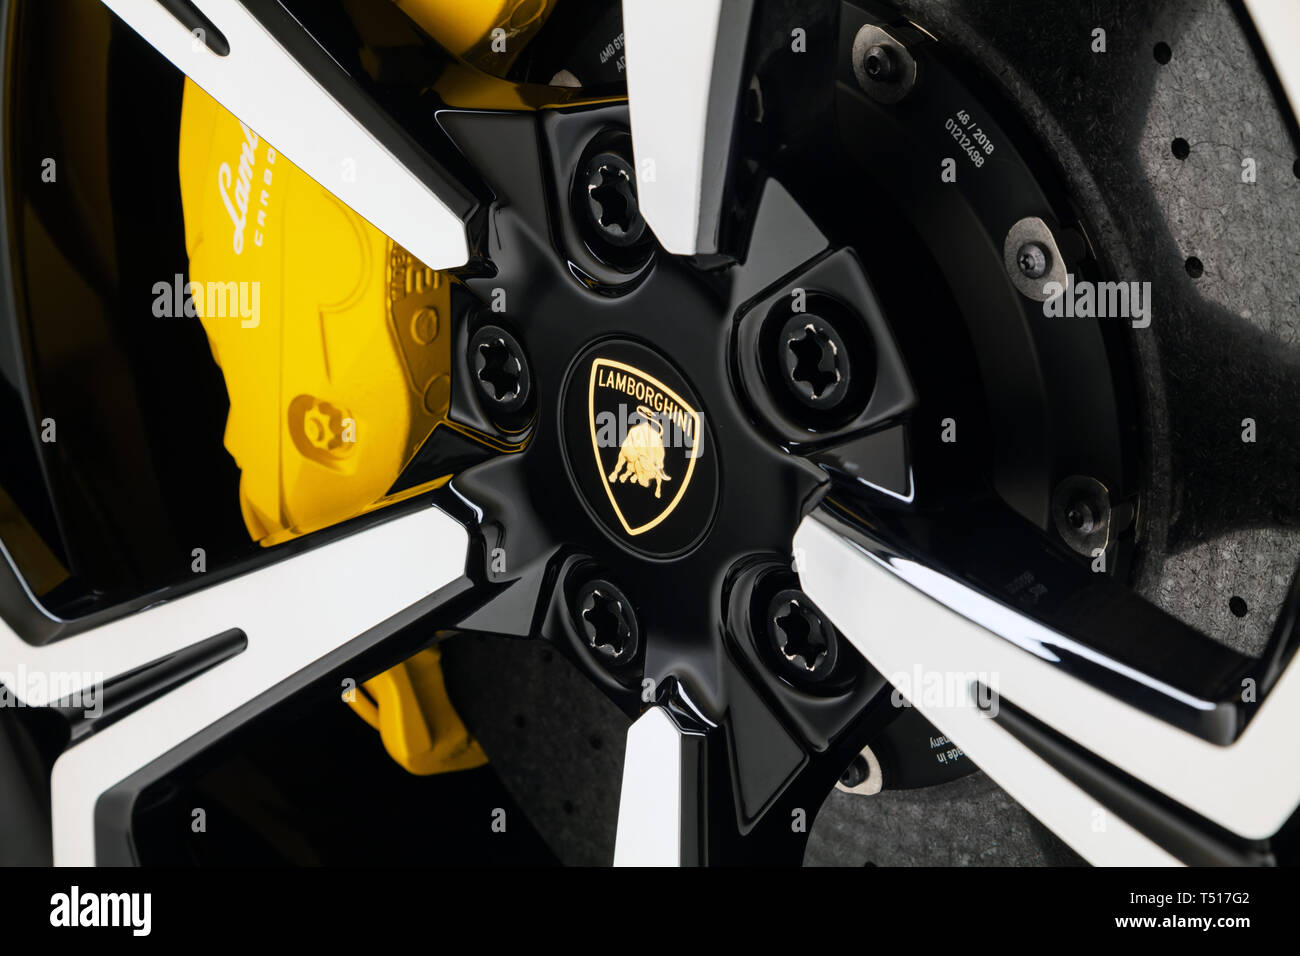 2019 Lamborghini Urus Stock Photo: 244046322 - Alamy